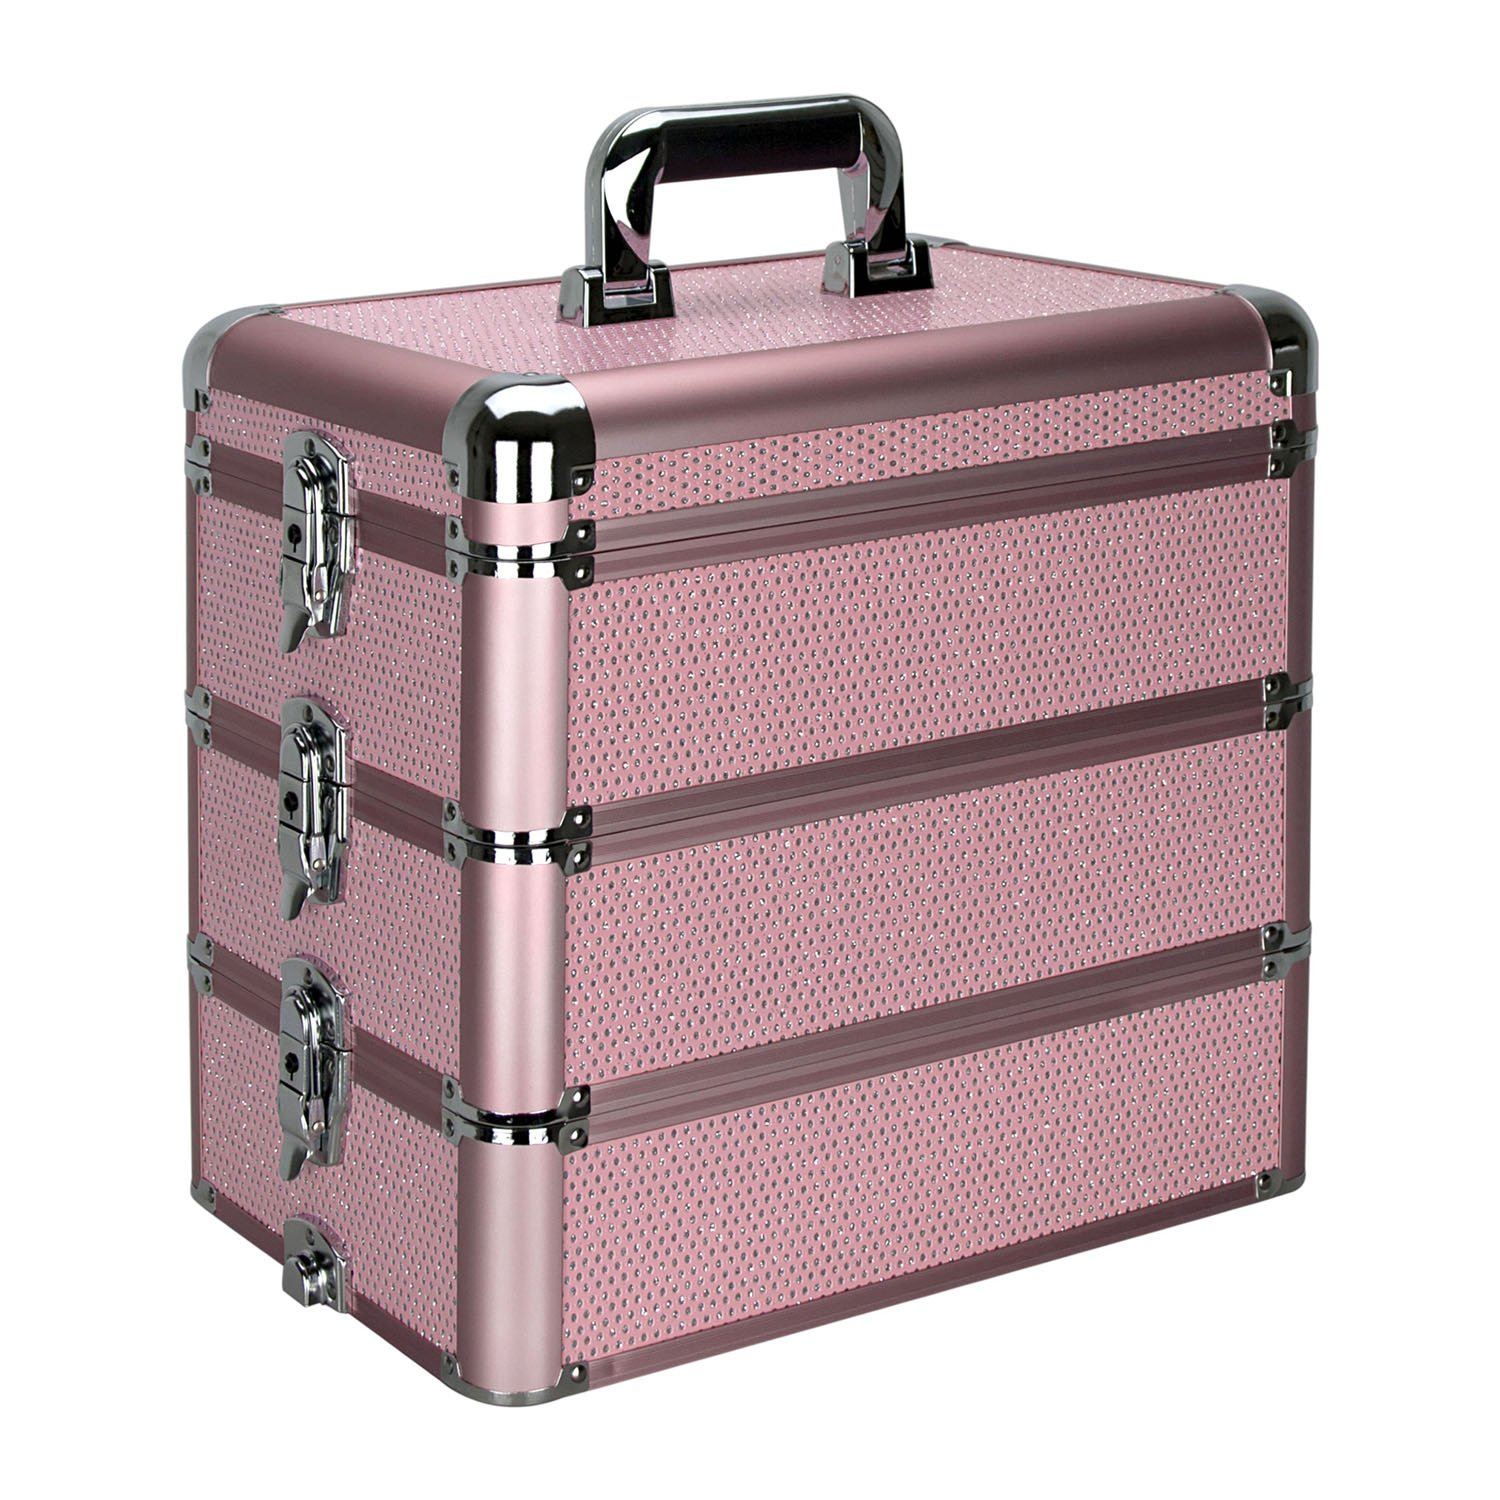 Ver Beauty DE3303KLPK 3-in-1 Removable Storage Art Craft Tool Case Organizer Adjustable Dividers Portable Travel Box Mirror-E3303, Pink Krystal